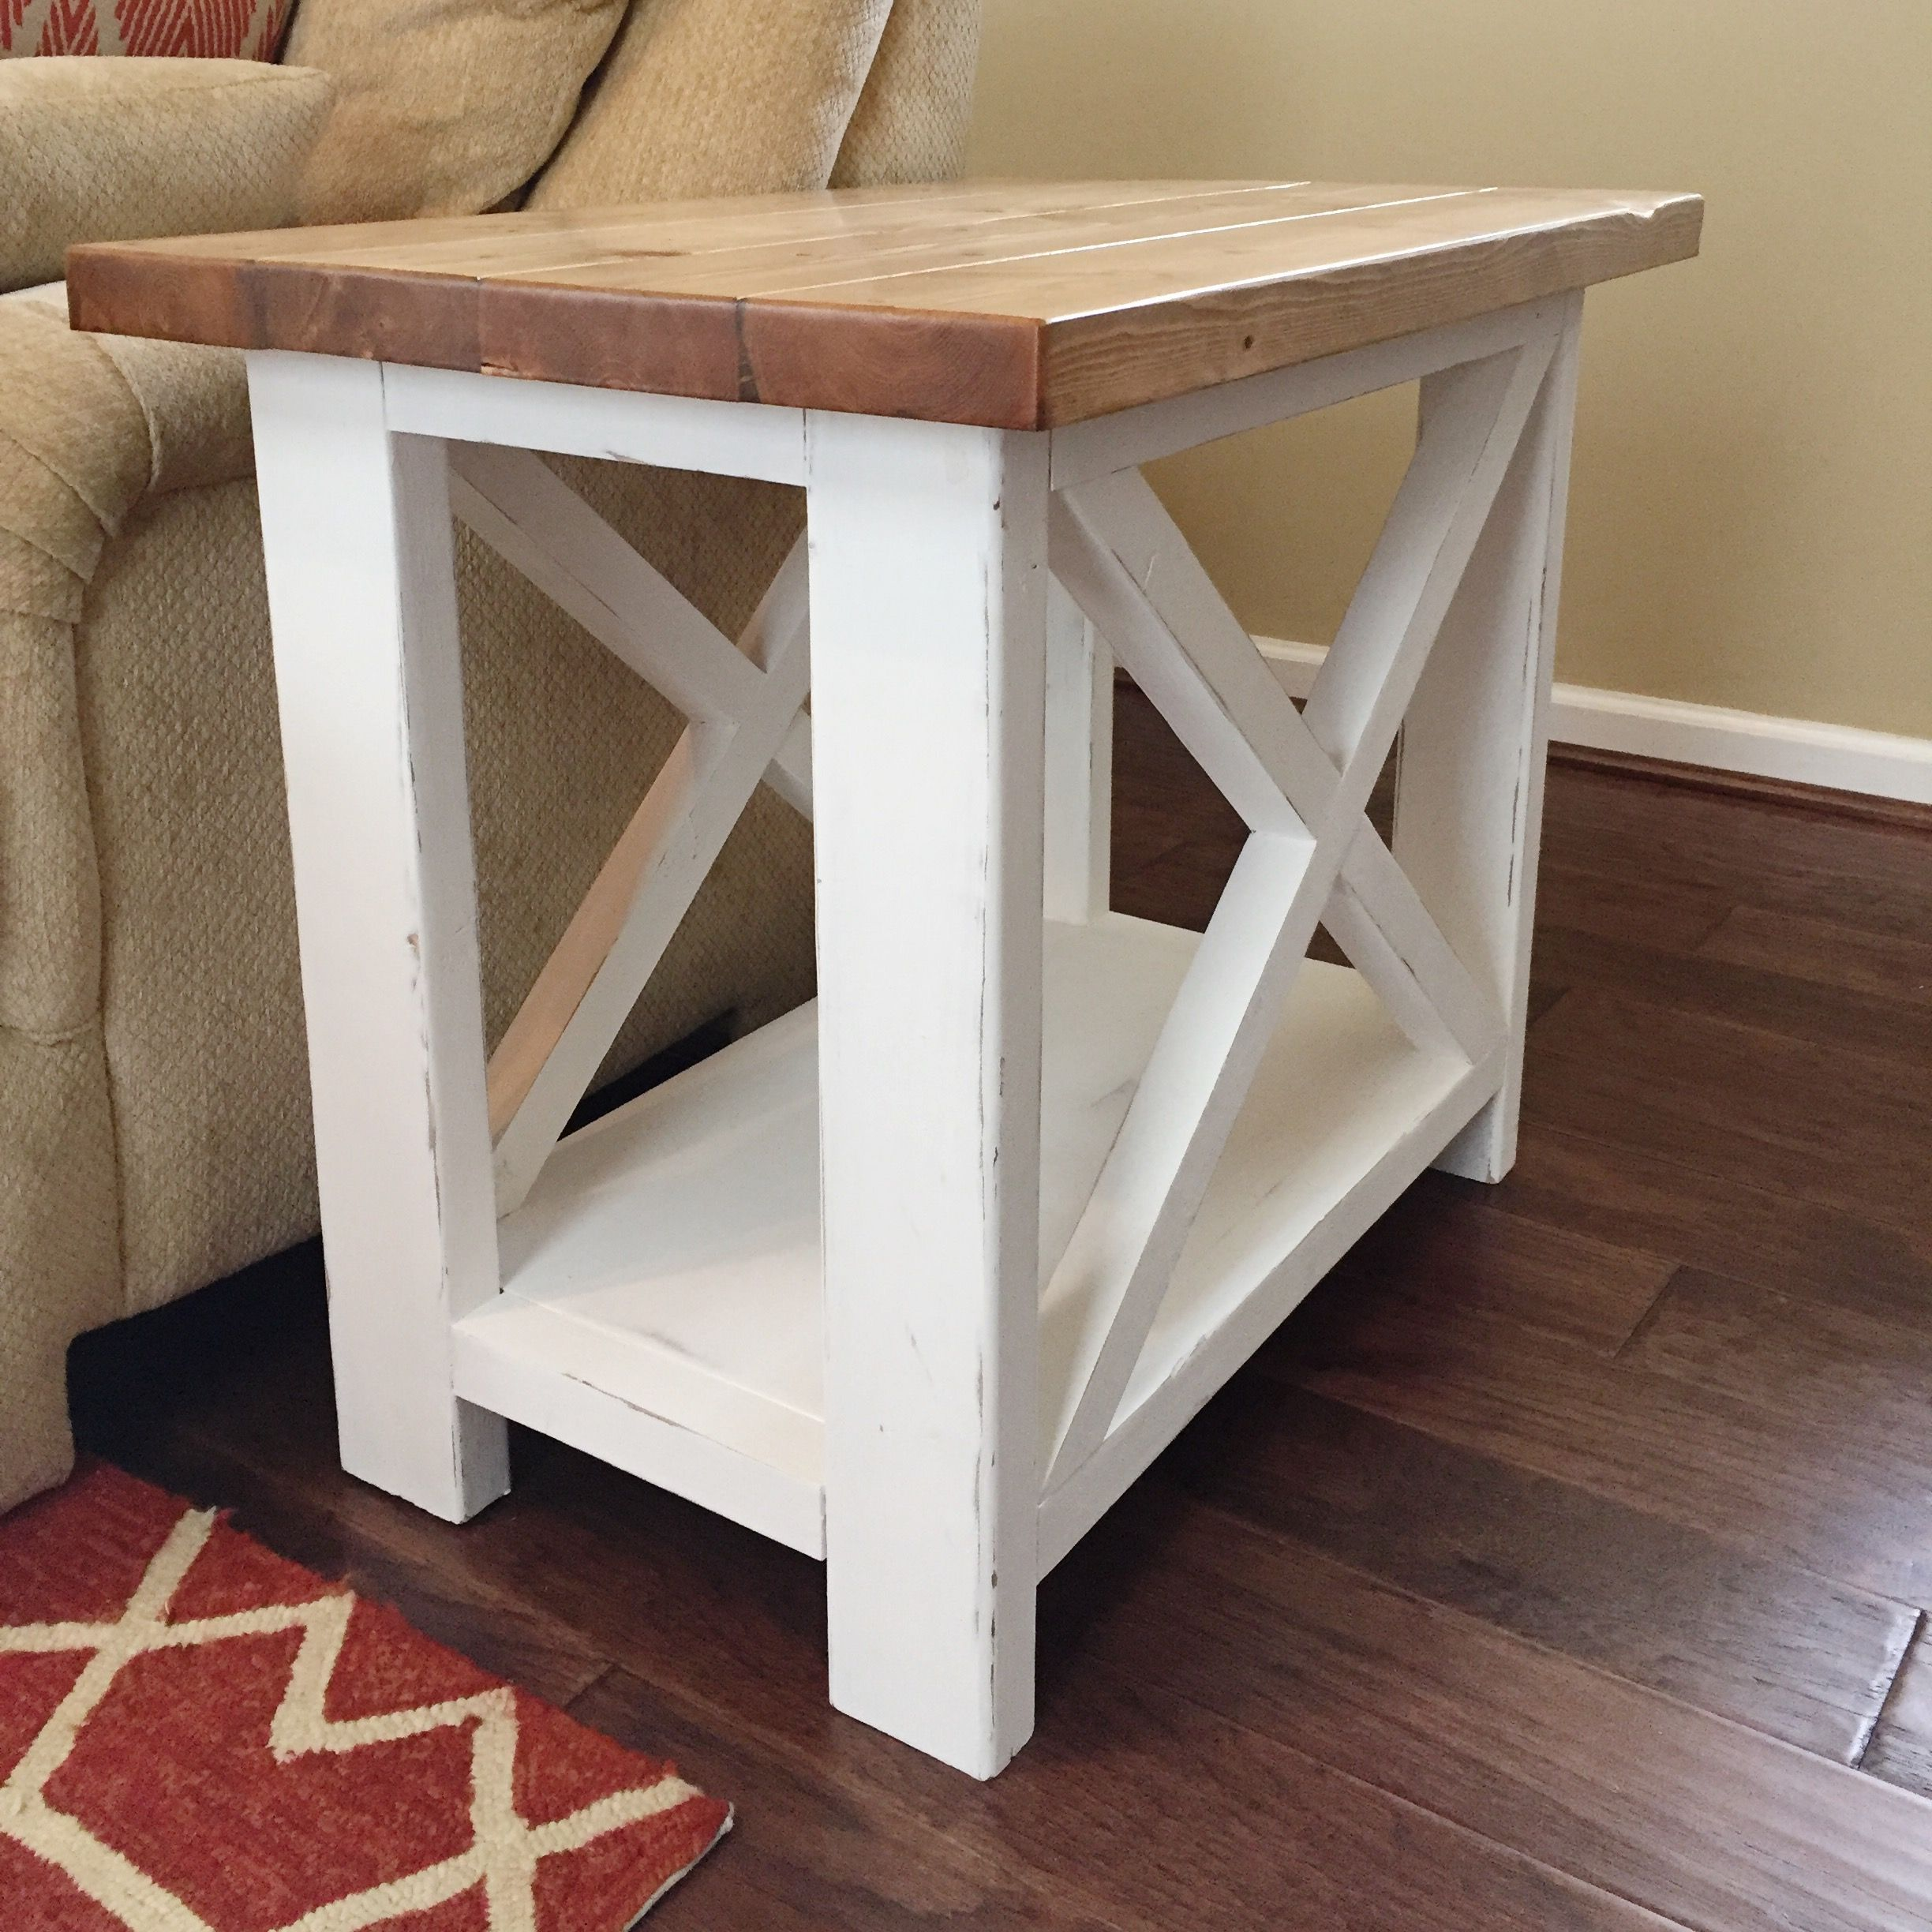 ashmore farmhouse end table base white distressed tables diy top special walnut red glass nest universal furniture blair cookie letter stamp cream and oak living room pallet